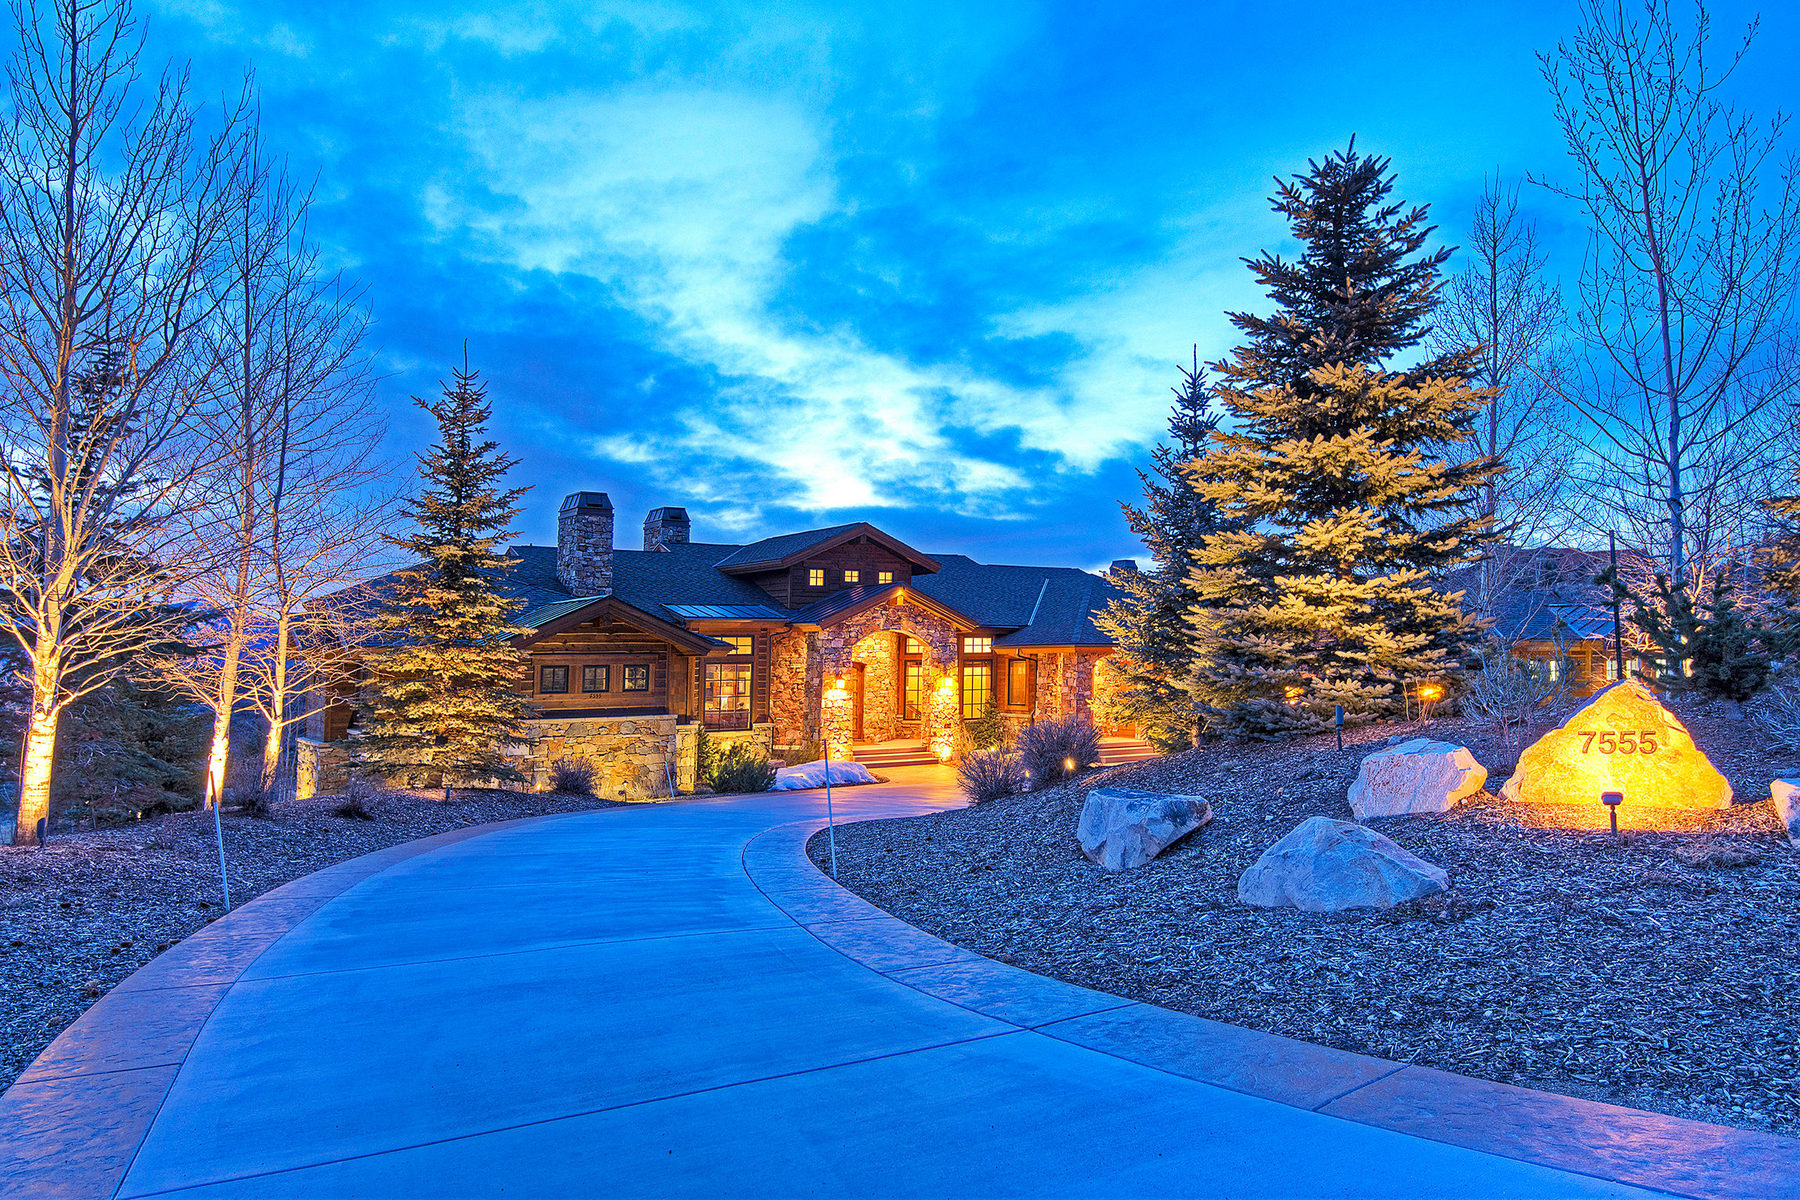 Single Family Home for Sale at Stunning Promontory Mountain Home With Golf & Ski Resort Views 7555 N. Ranch Club Trail Lot #23 Park City, Utah 84098 United States